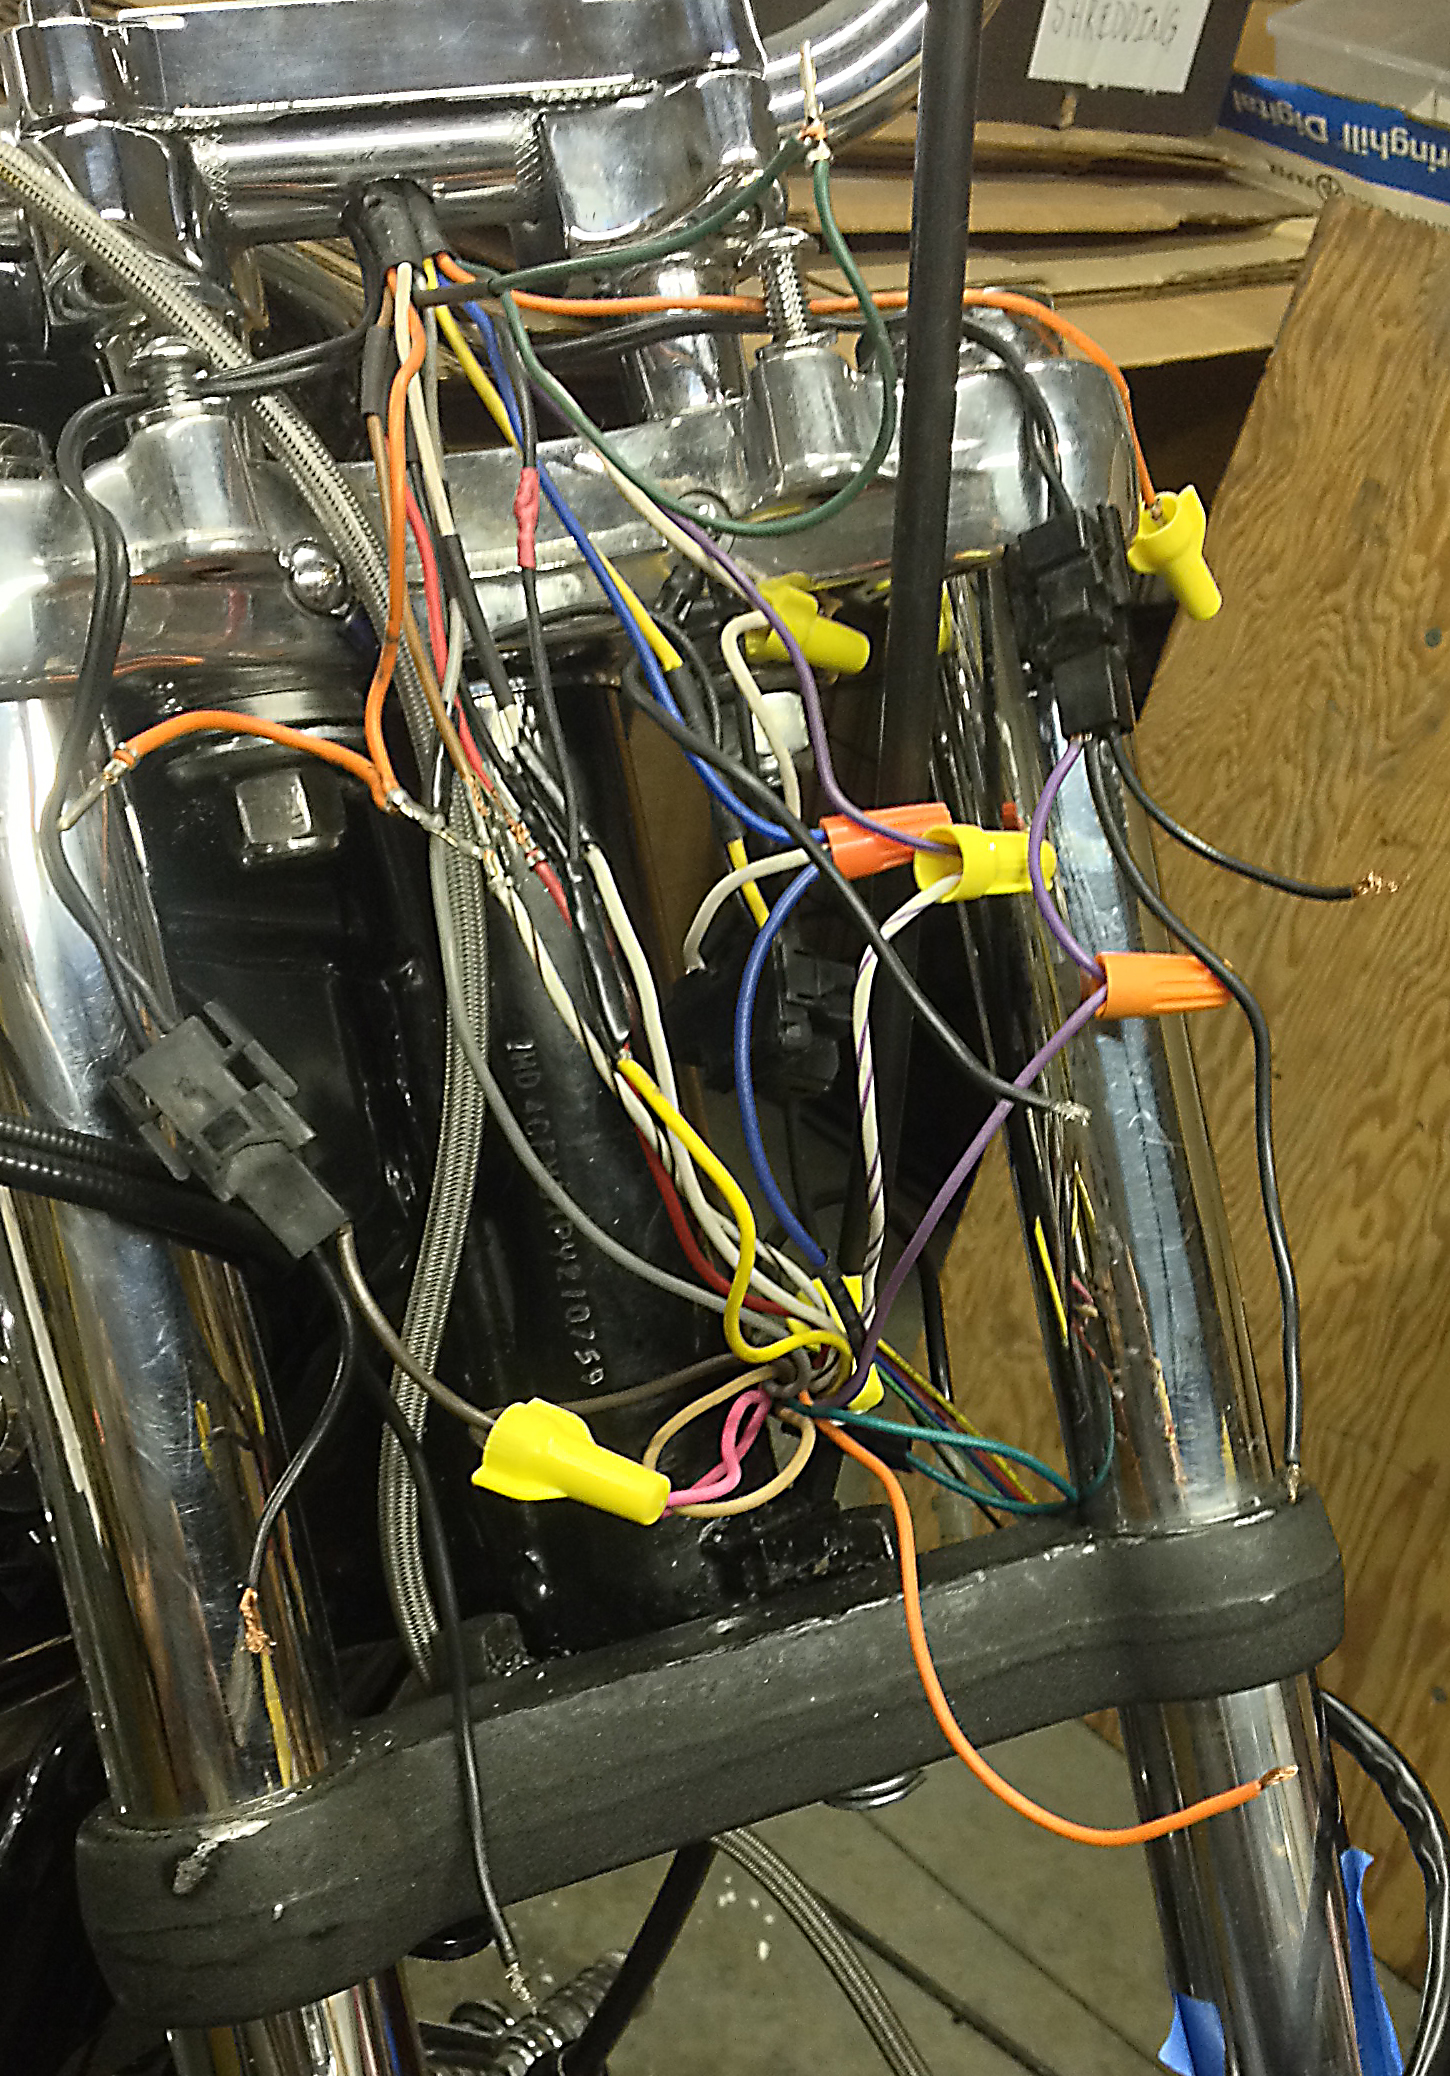 1993 harley sportster xlh - removed headlight and removed ...